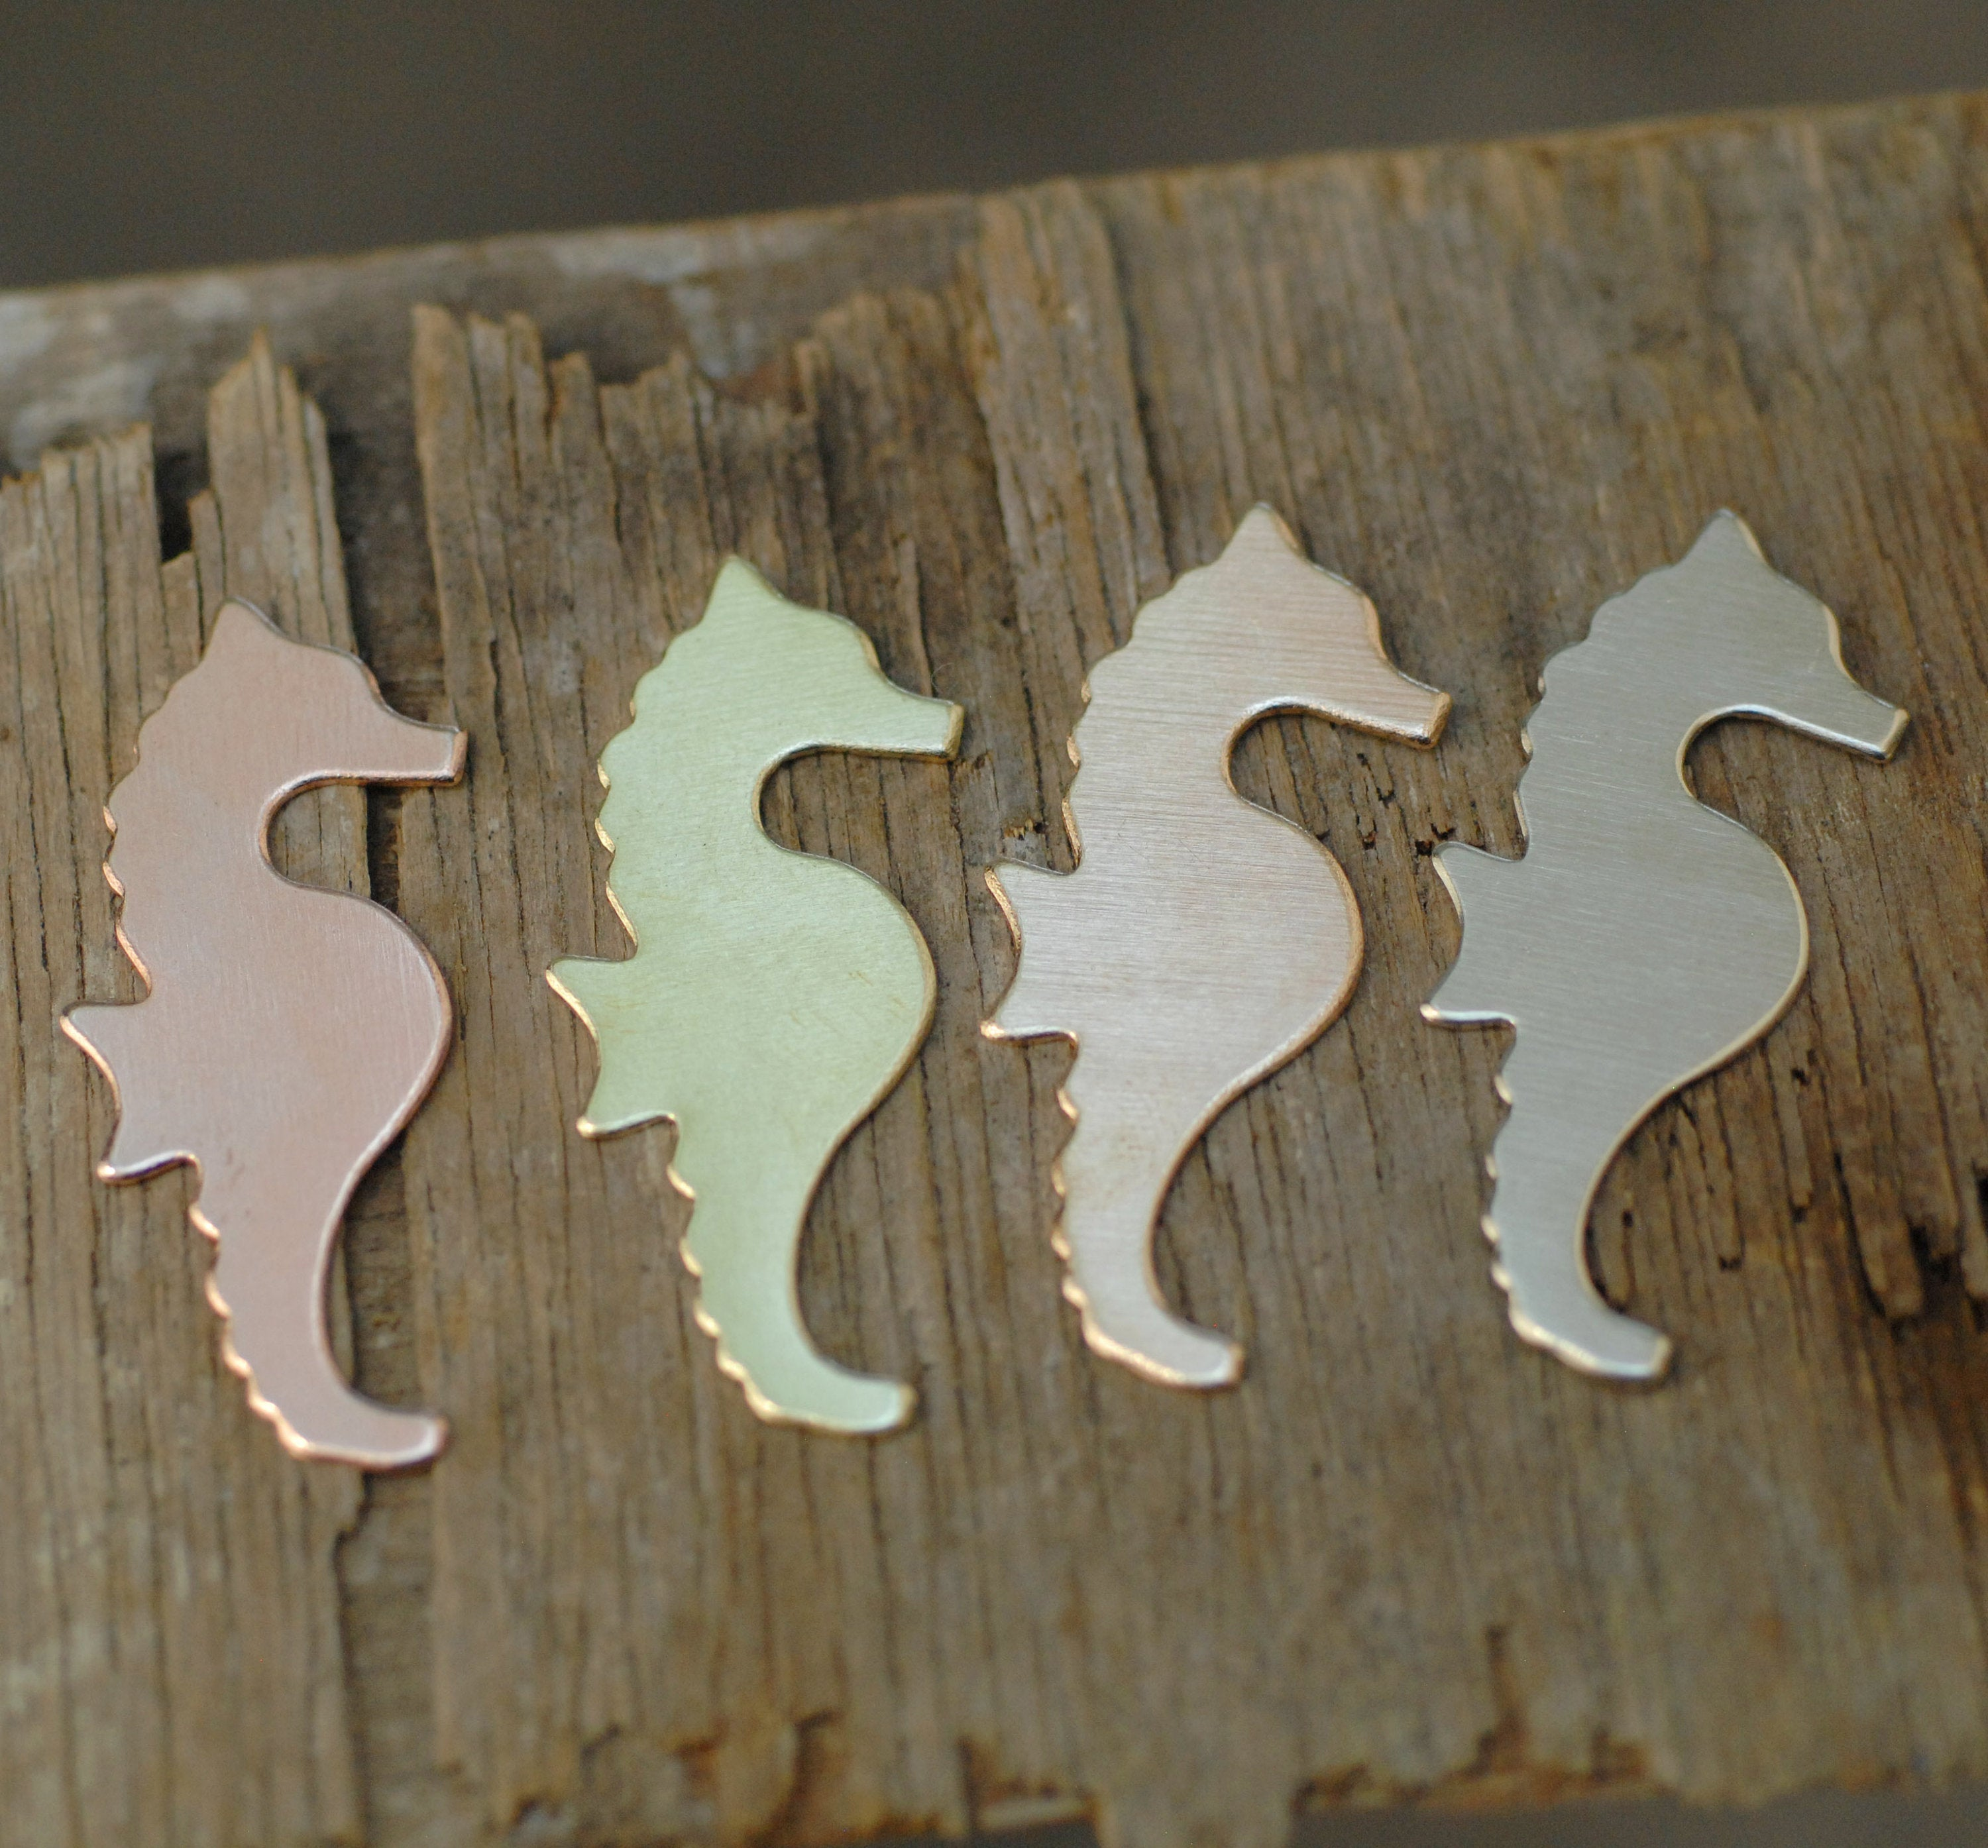 Seahorse Cute Blanks Enameling Stamping 100% Copper Blank brass, bronze, nickel silver 24g 22g 20g